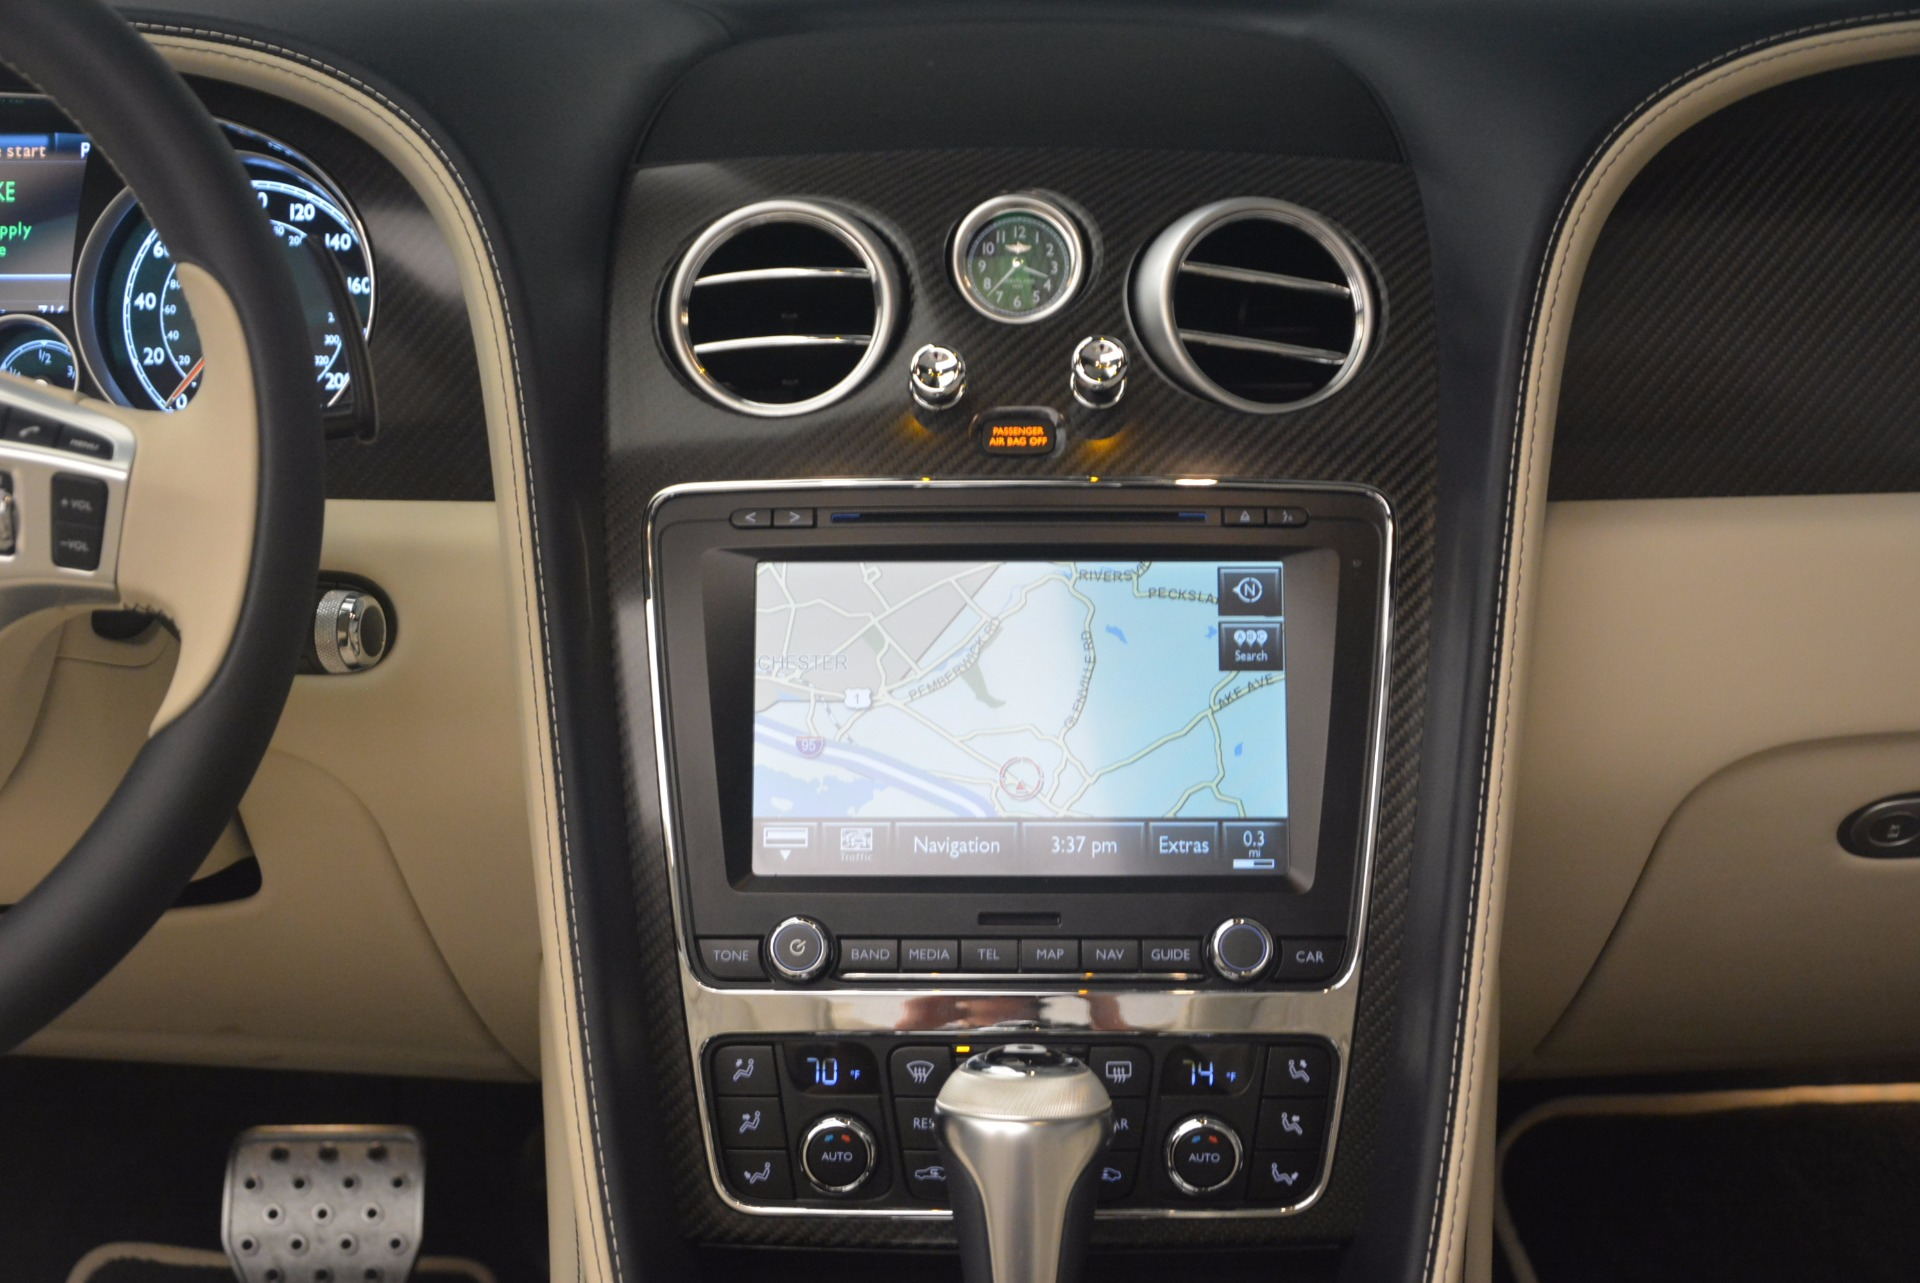 Used 2013 Bentley Continental GT V8 Le Mans Edition, 1 of 48 For Sale In Westport, CT 1288_p39